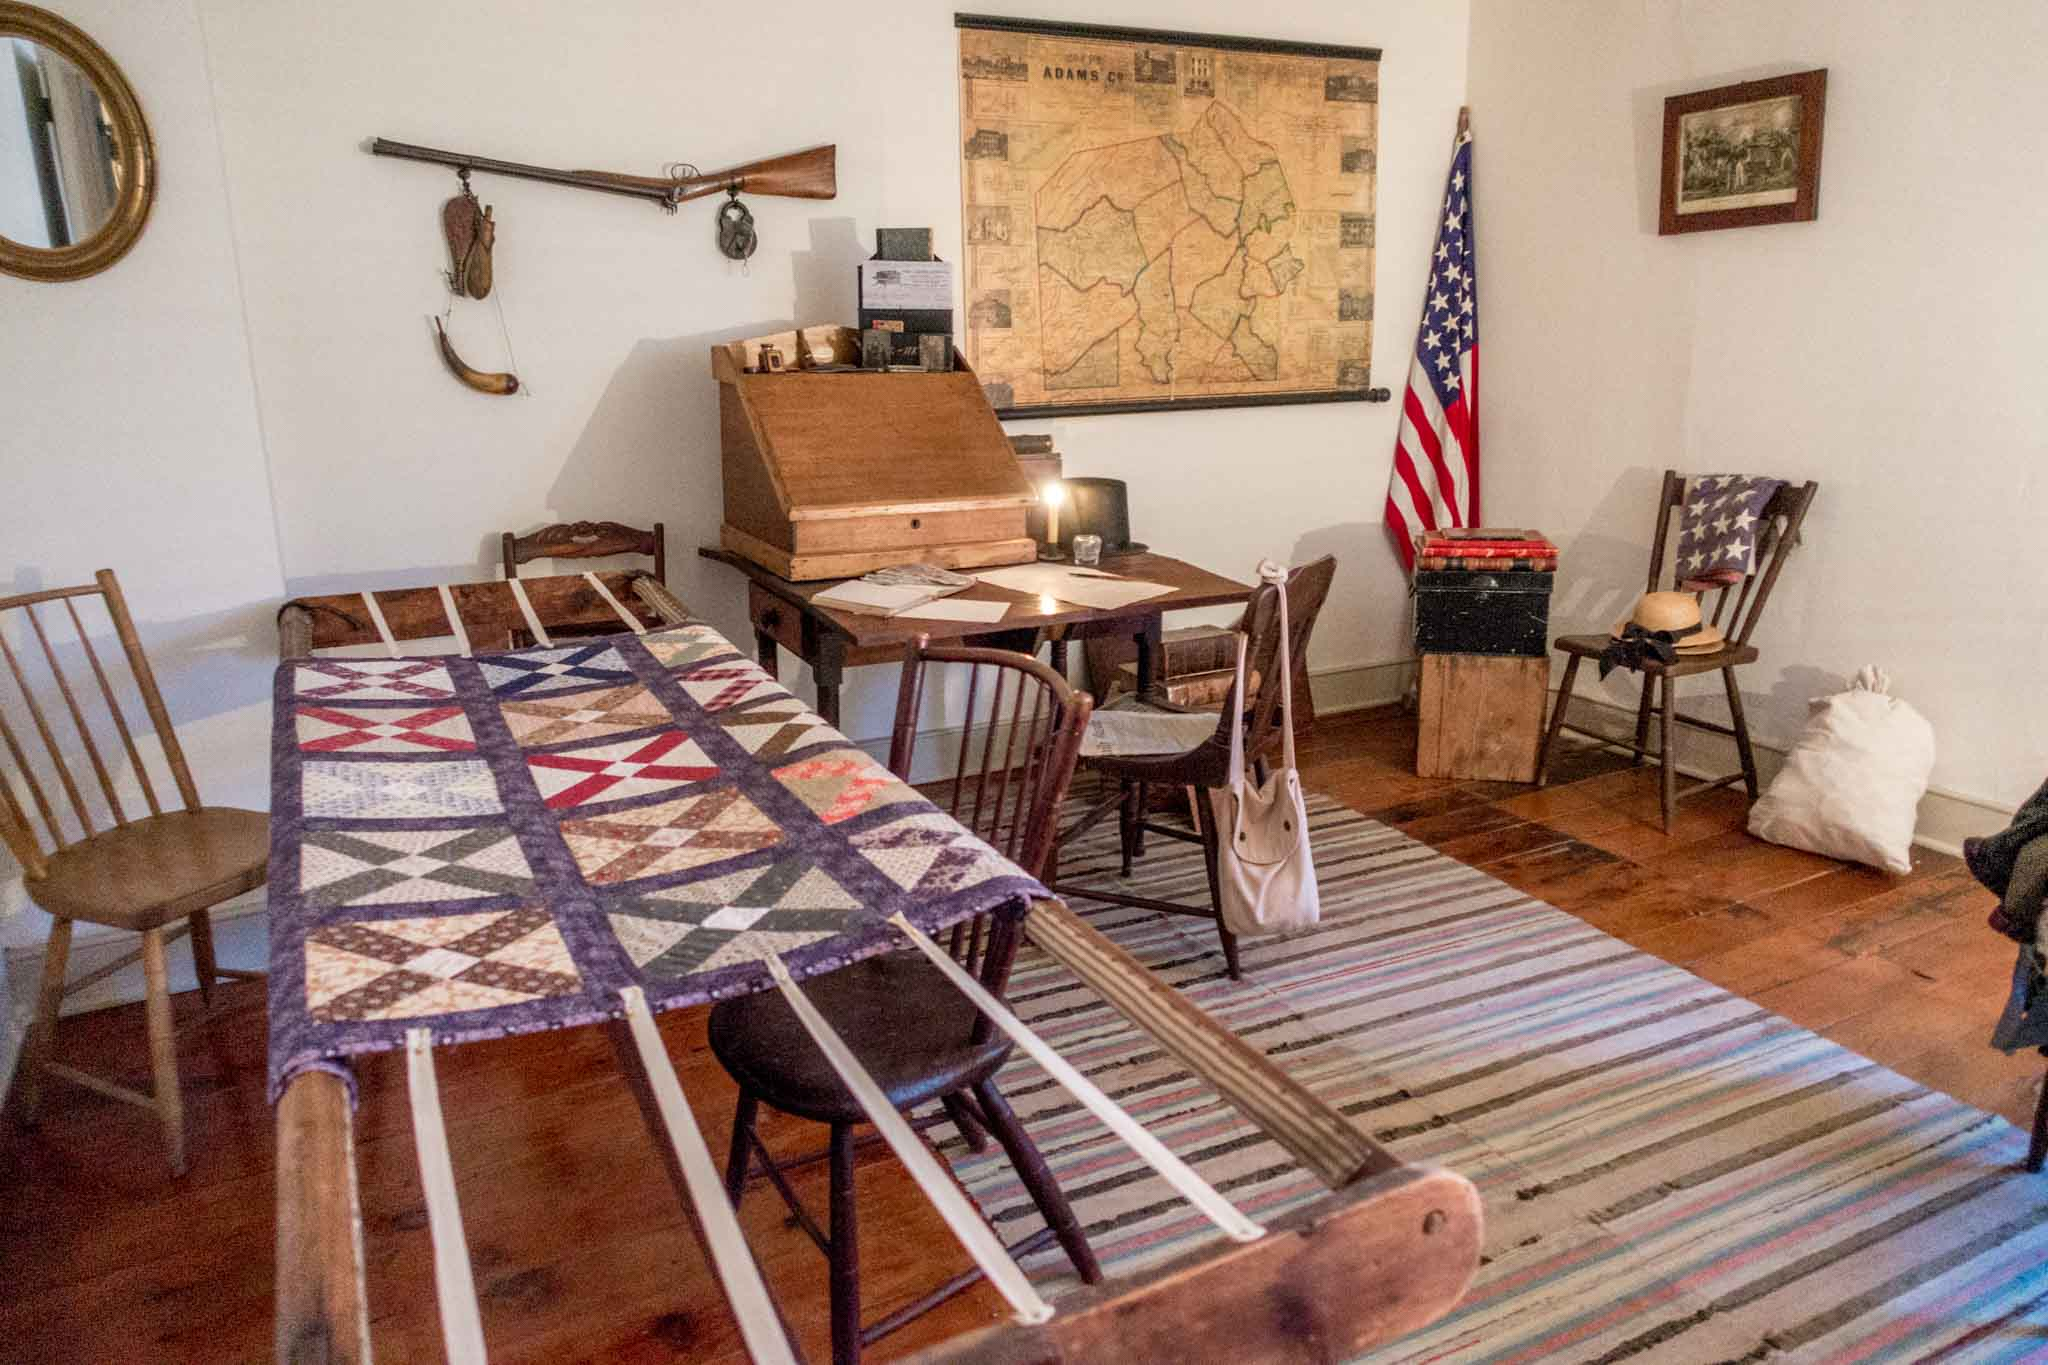 Civil War-era quilting room with desk and map at the Shriver House Museum